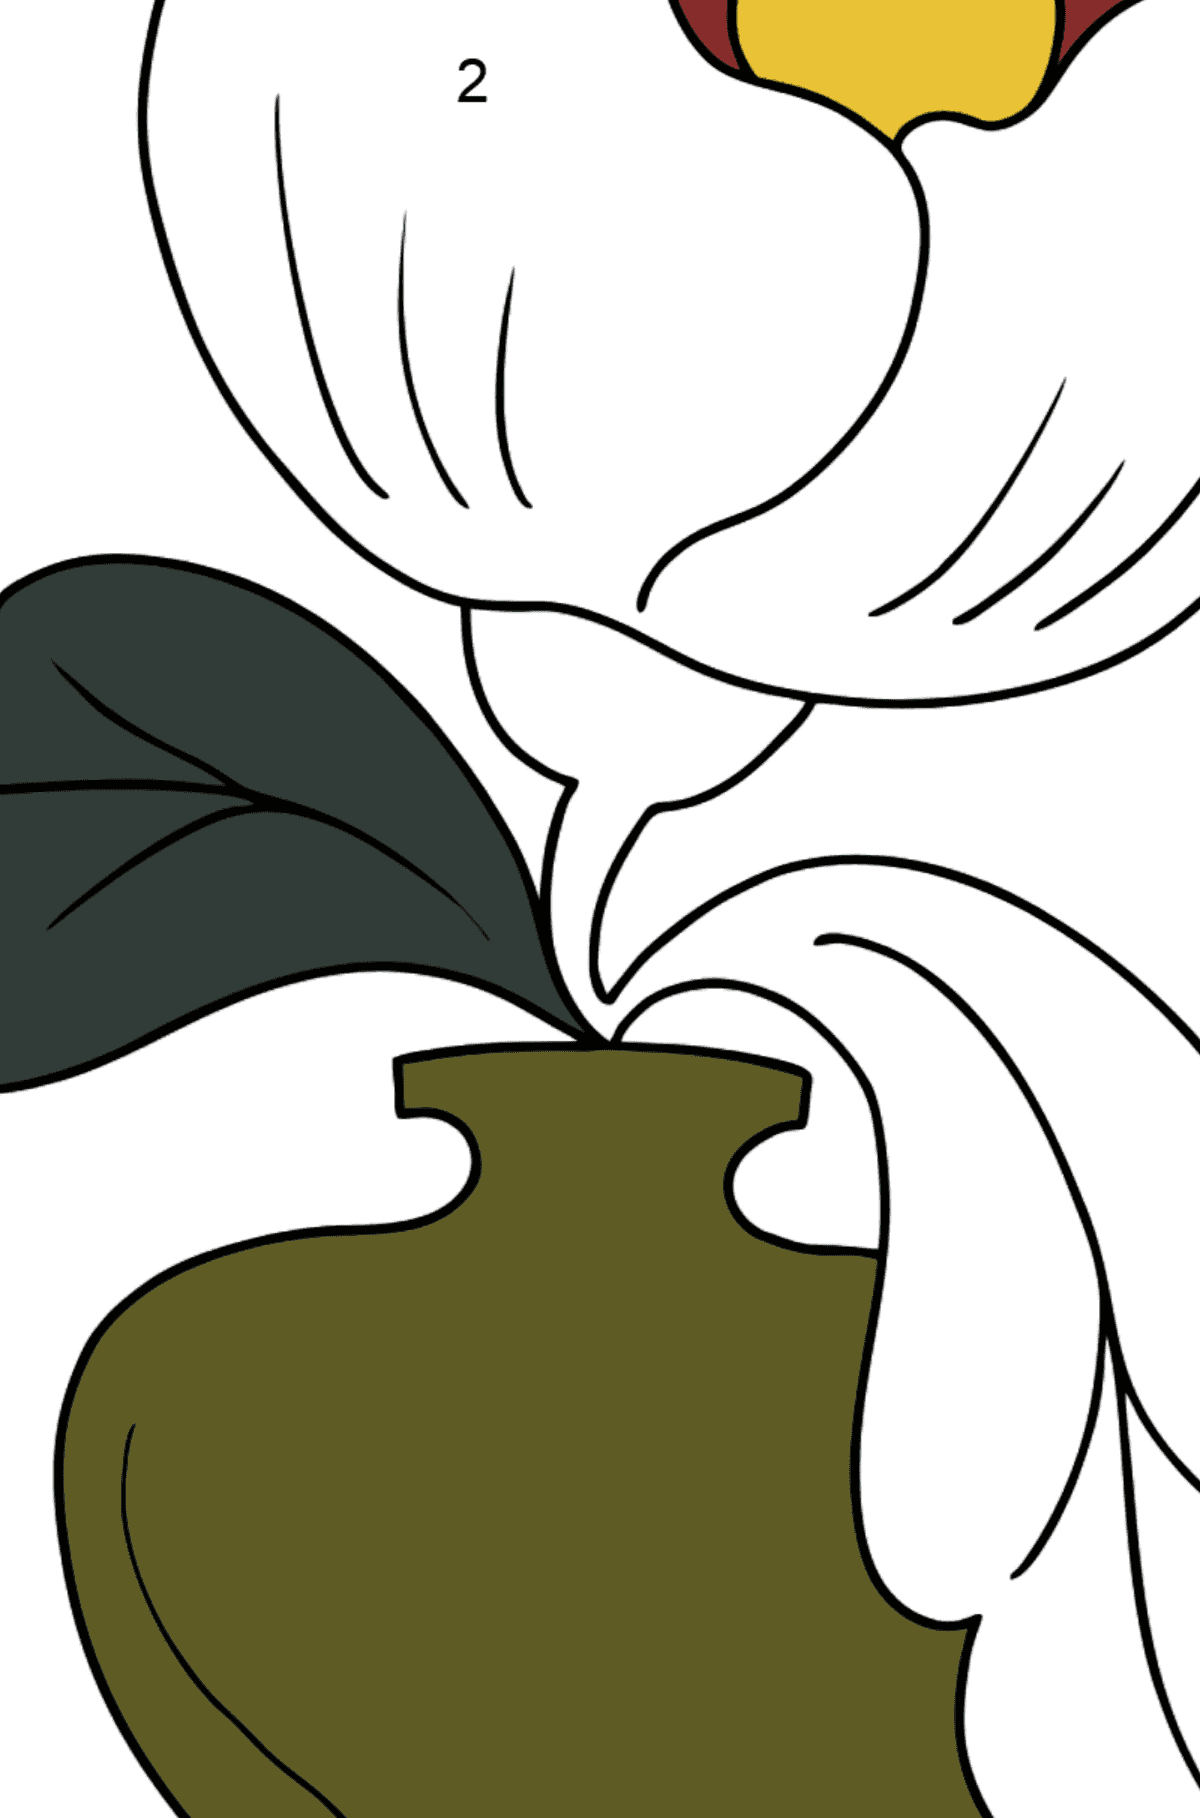 Coloring Page - flowers in a vase - Coloring by Numbers for Kids